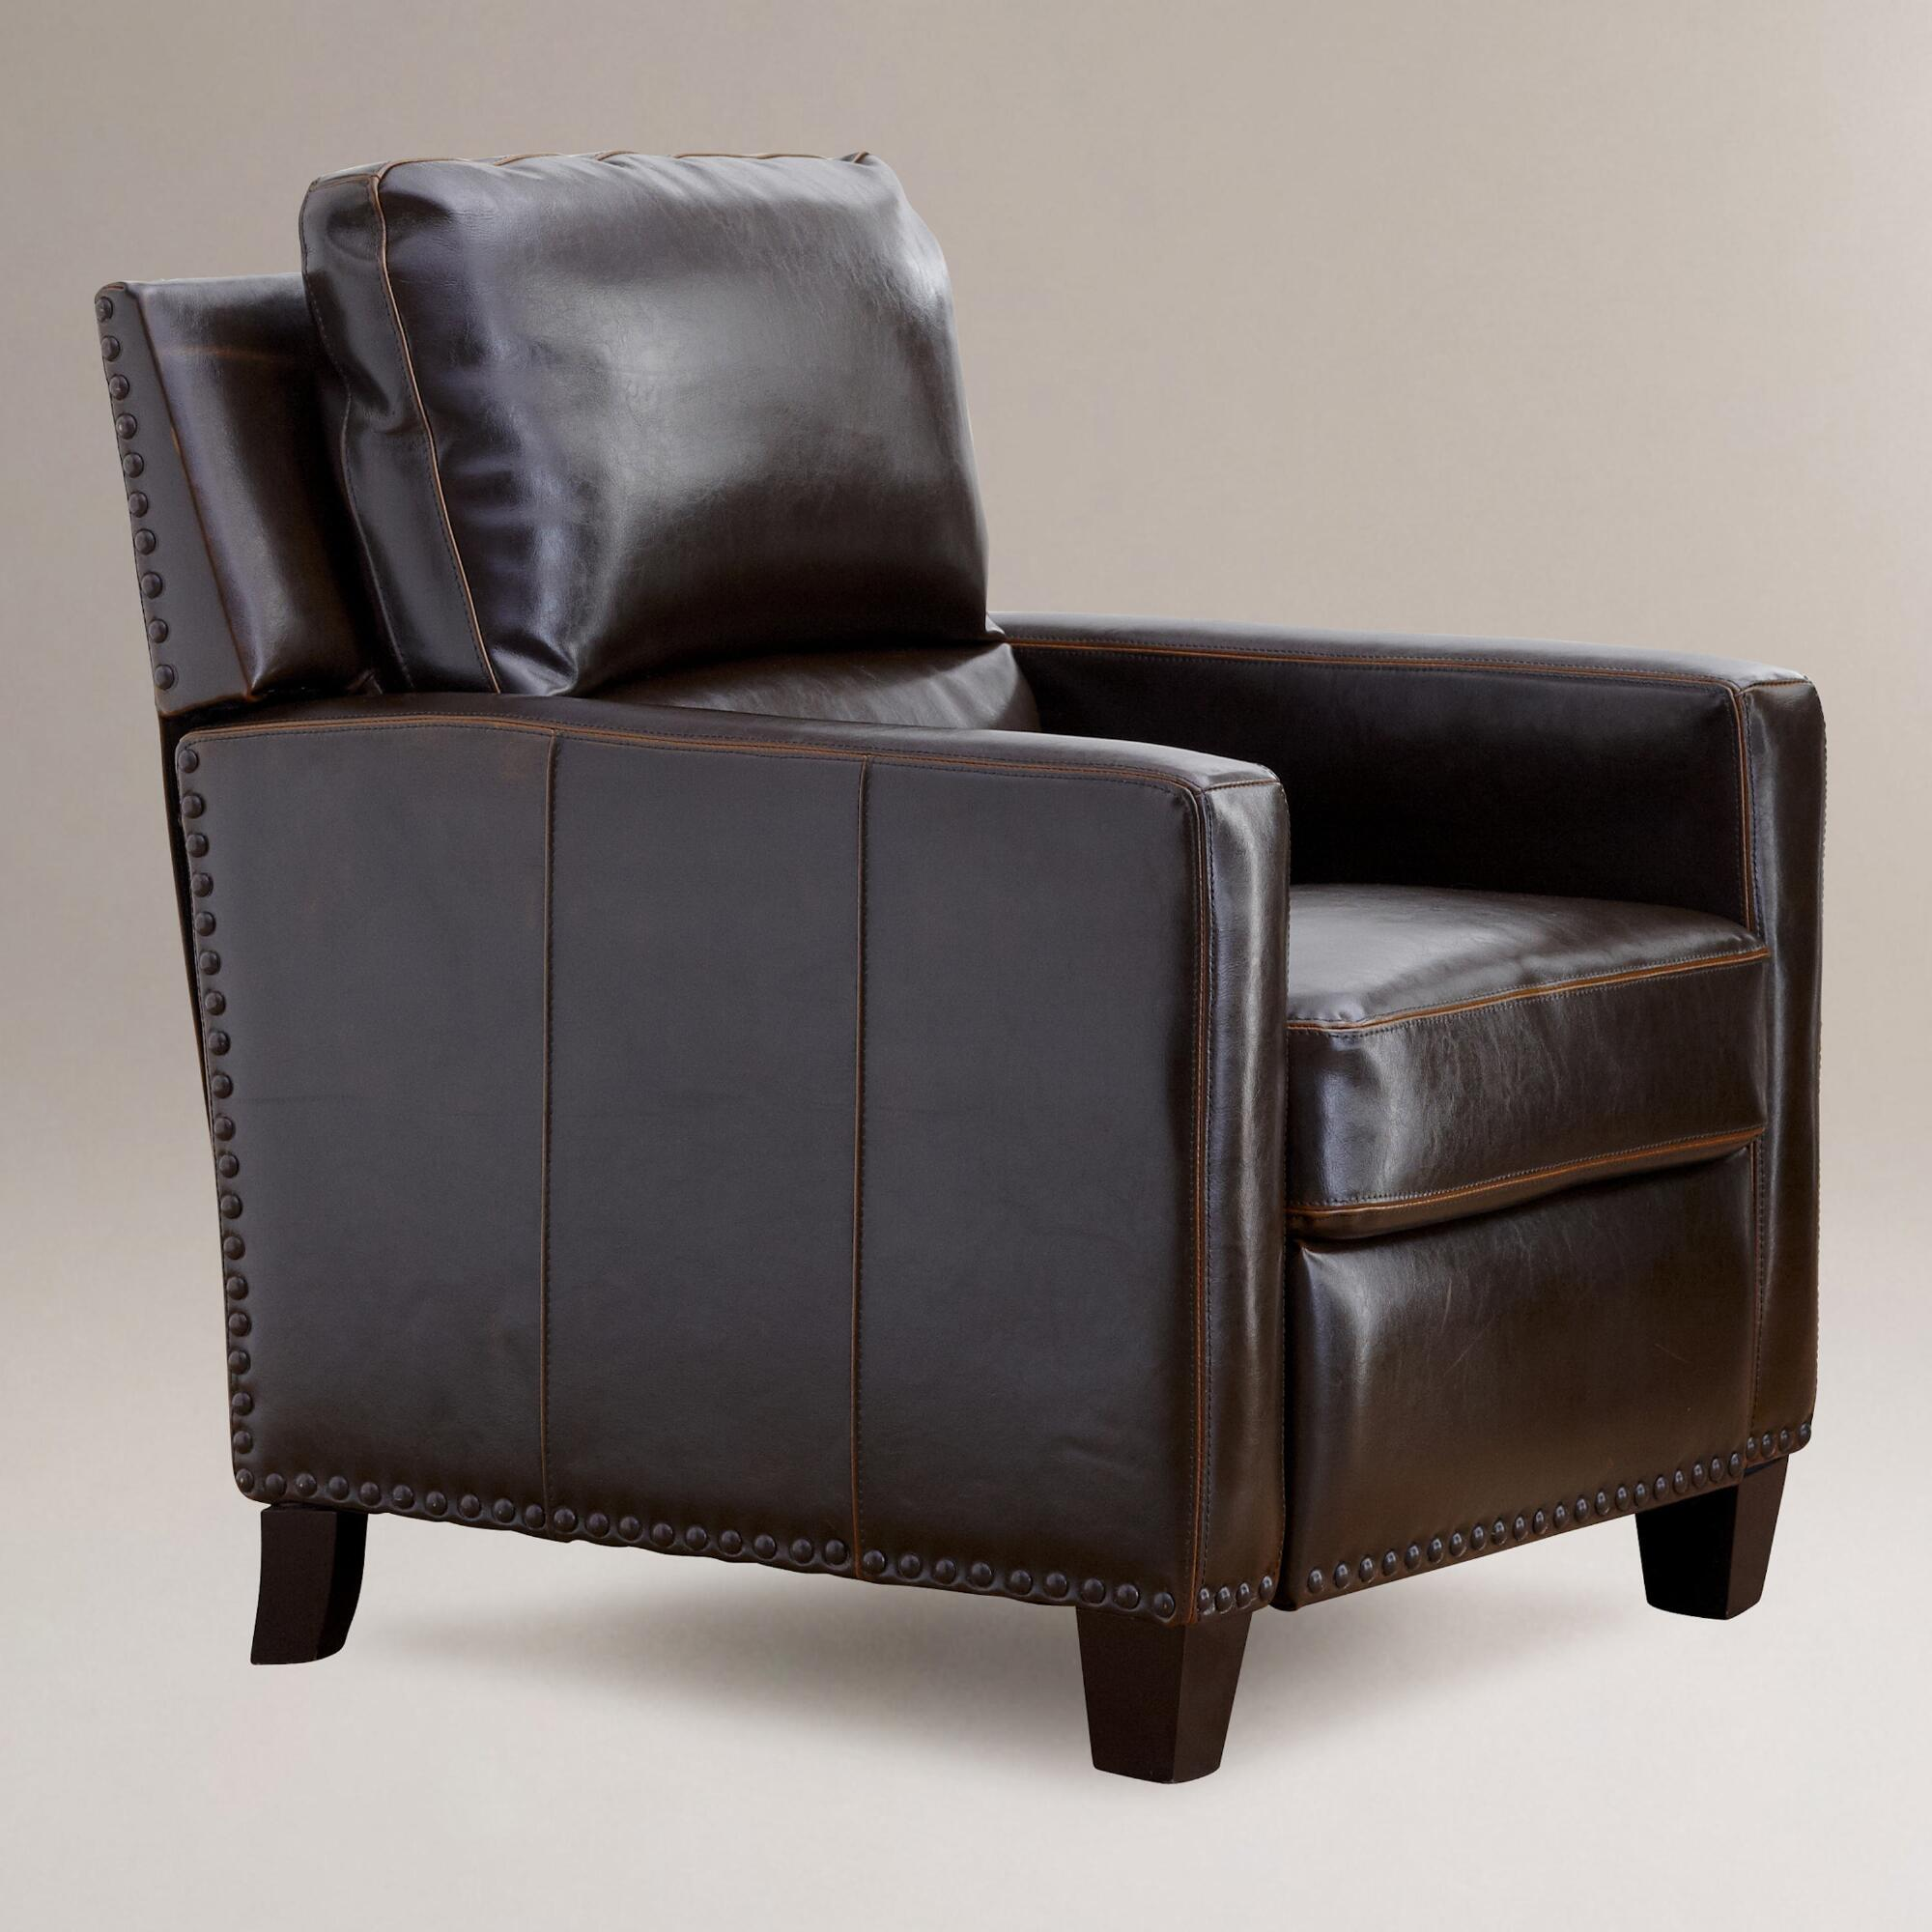 World Market Red Leather Chair: Leather Recliners @BBT.com